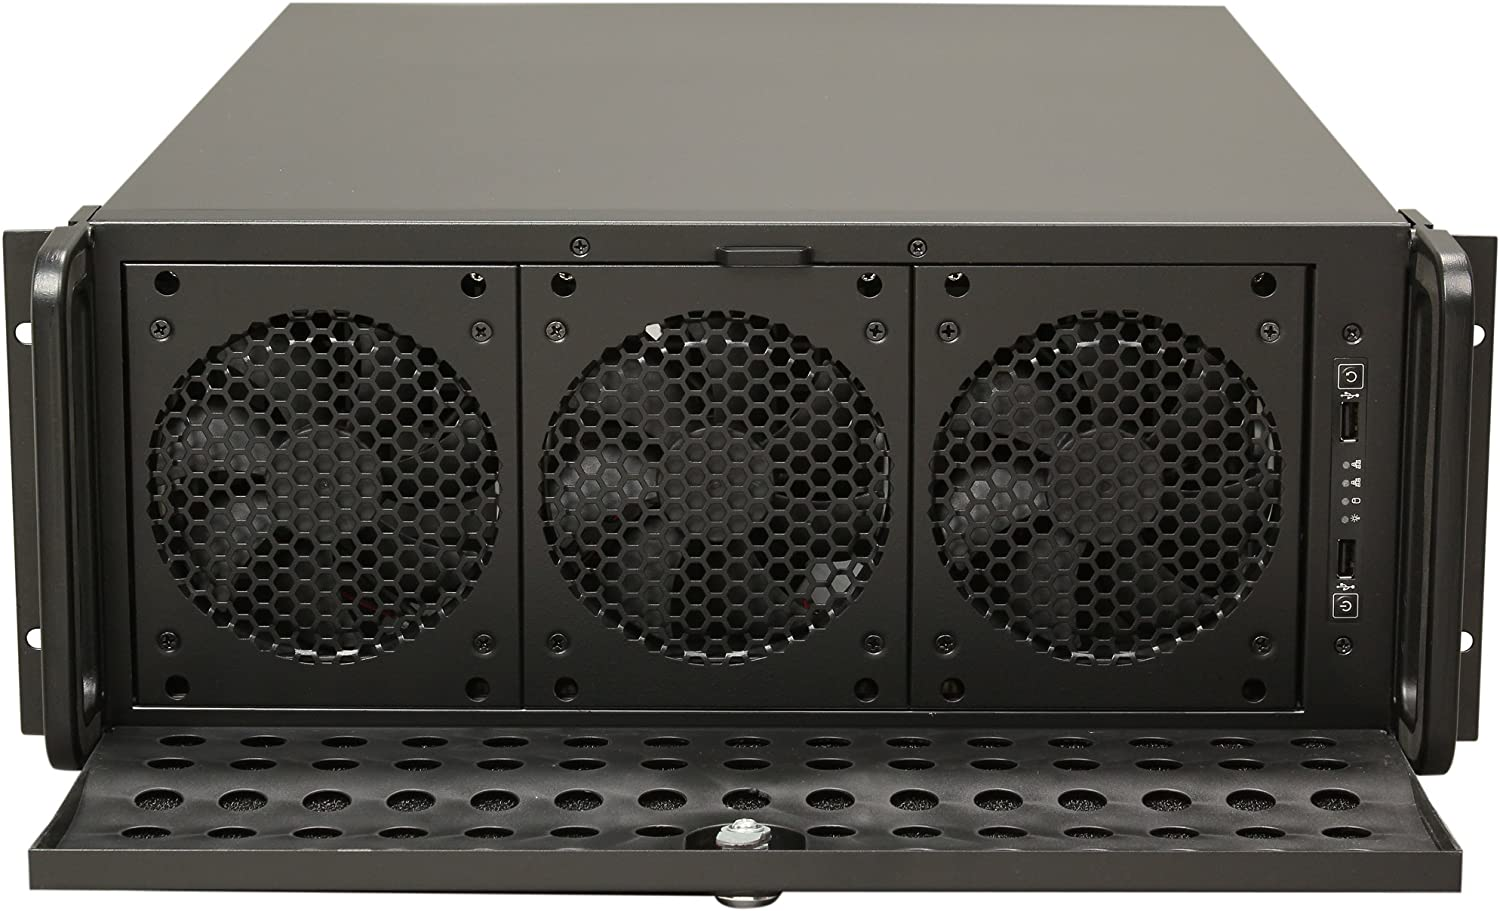 Rosewill 4u Server Chassis Server Case Rackmount Case Metal Rack Mount Computer Case Support With 15 Bays 7 Fans Pre Installed Rsv L4500 Computers Accessories